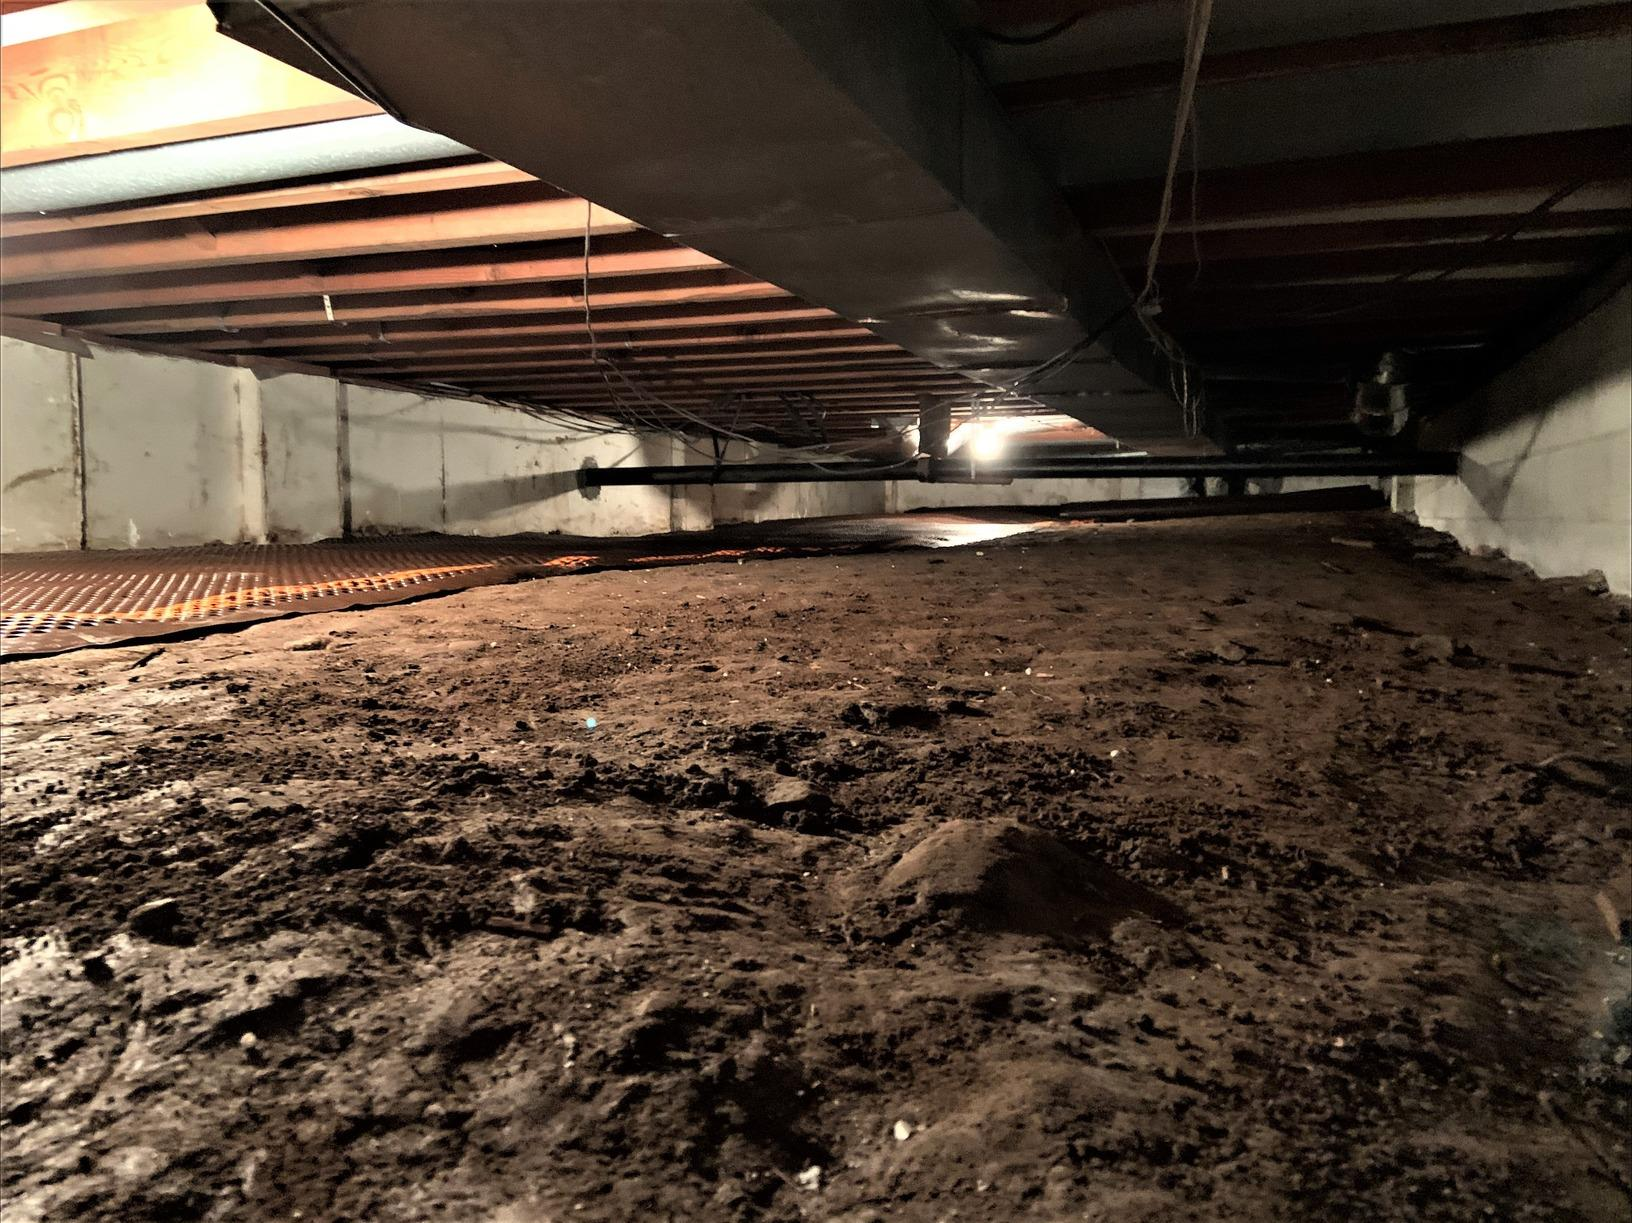 Installing CleanSpace In a Crawl Space With Closed-Cell Spray foam and SmartJacks - Neversink, NY - Before Photo